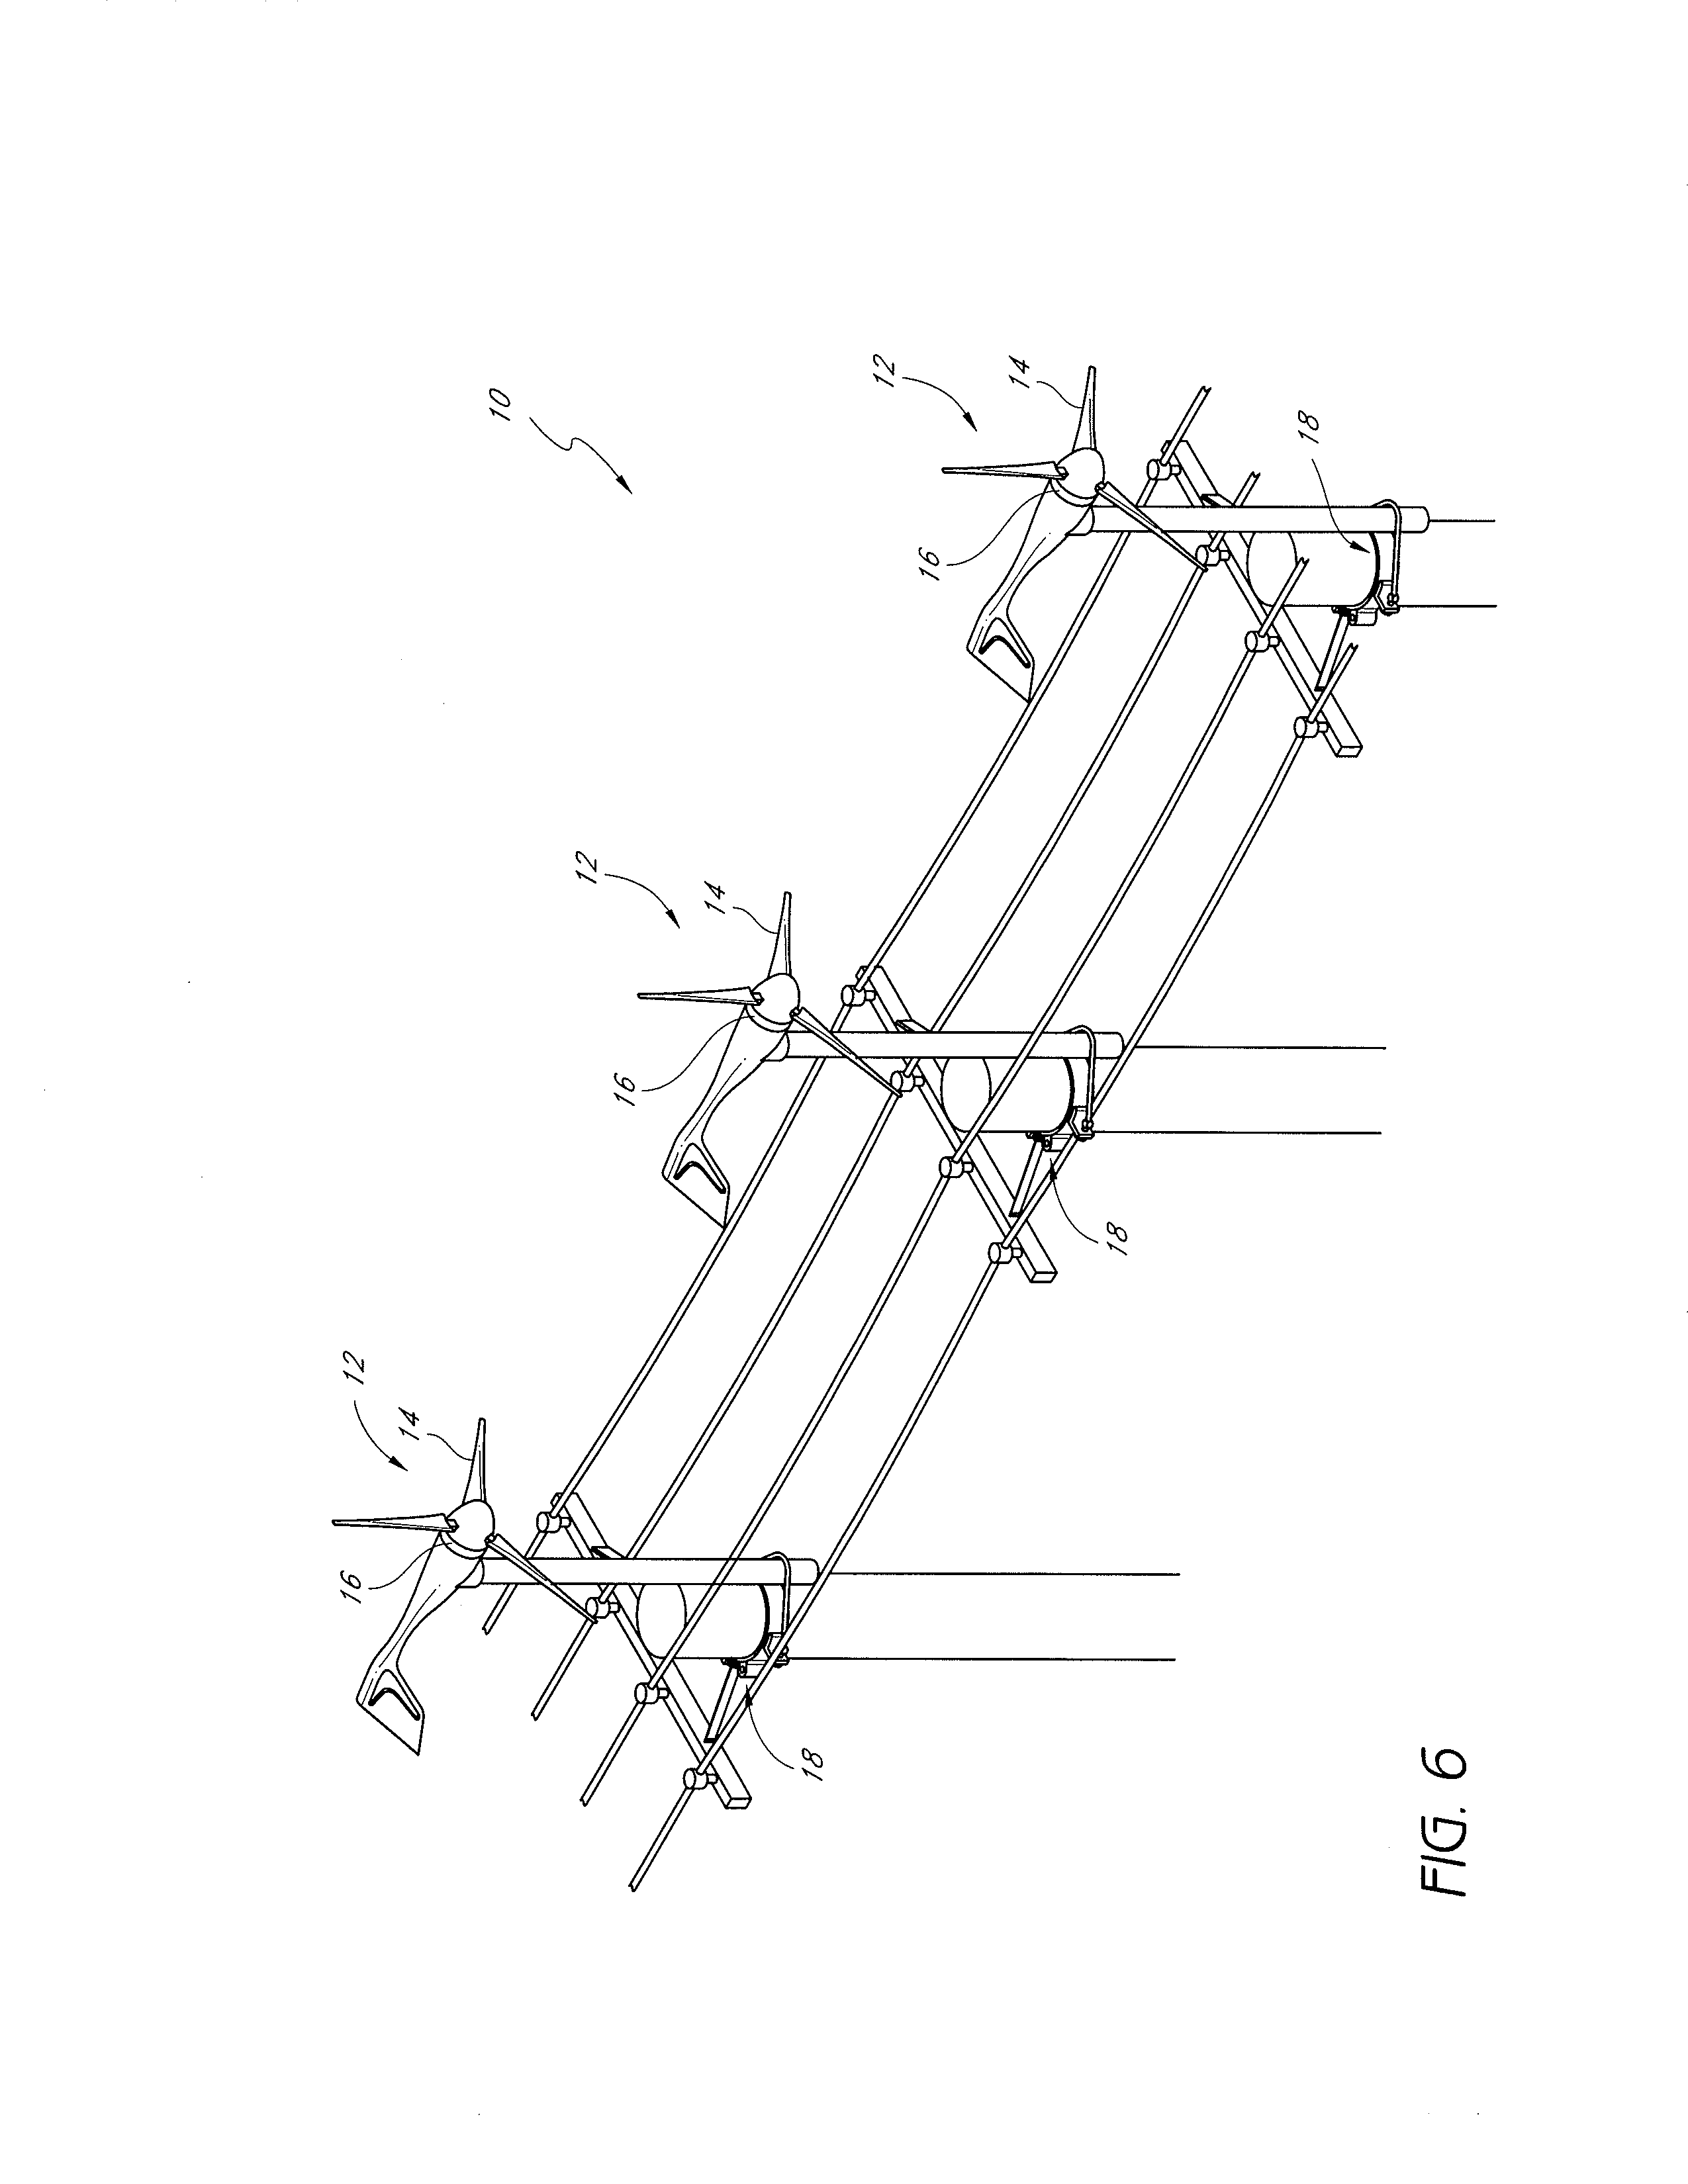 patent us8275489 - systems and methods for deployment of wind turbines